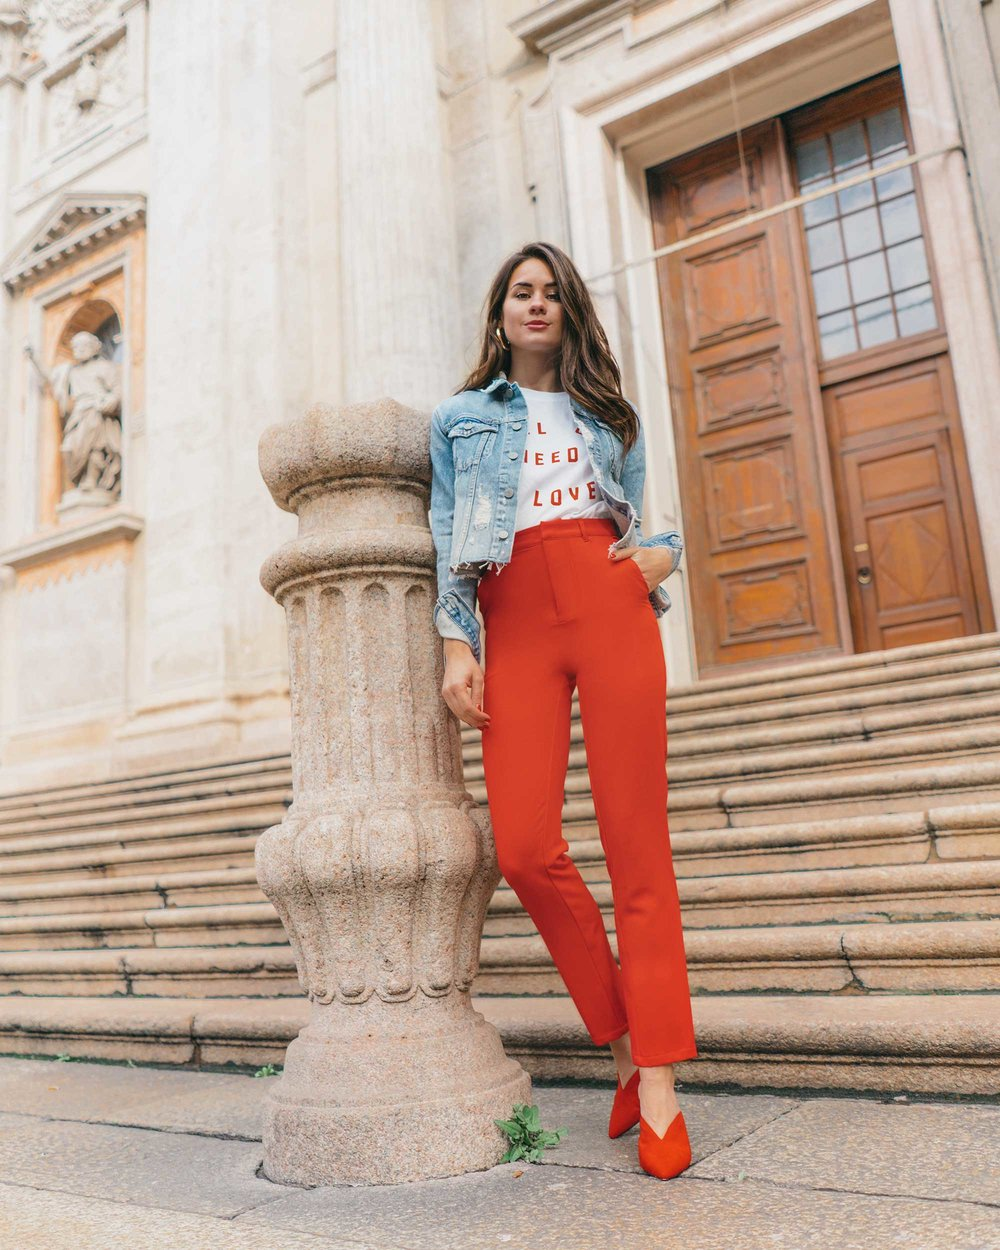 Red-Skinny-Pants,-All-You-Need-Is-Love'-Slogan-T-Shirt,-Cara-Cropped-Denim-Jacket,-Milan-Spring-Outfit1.jpg